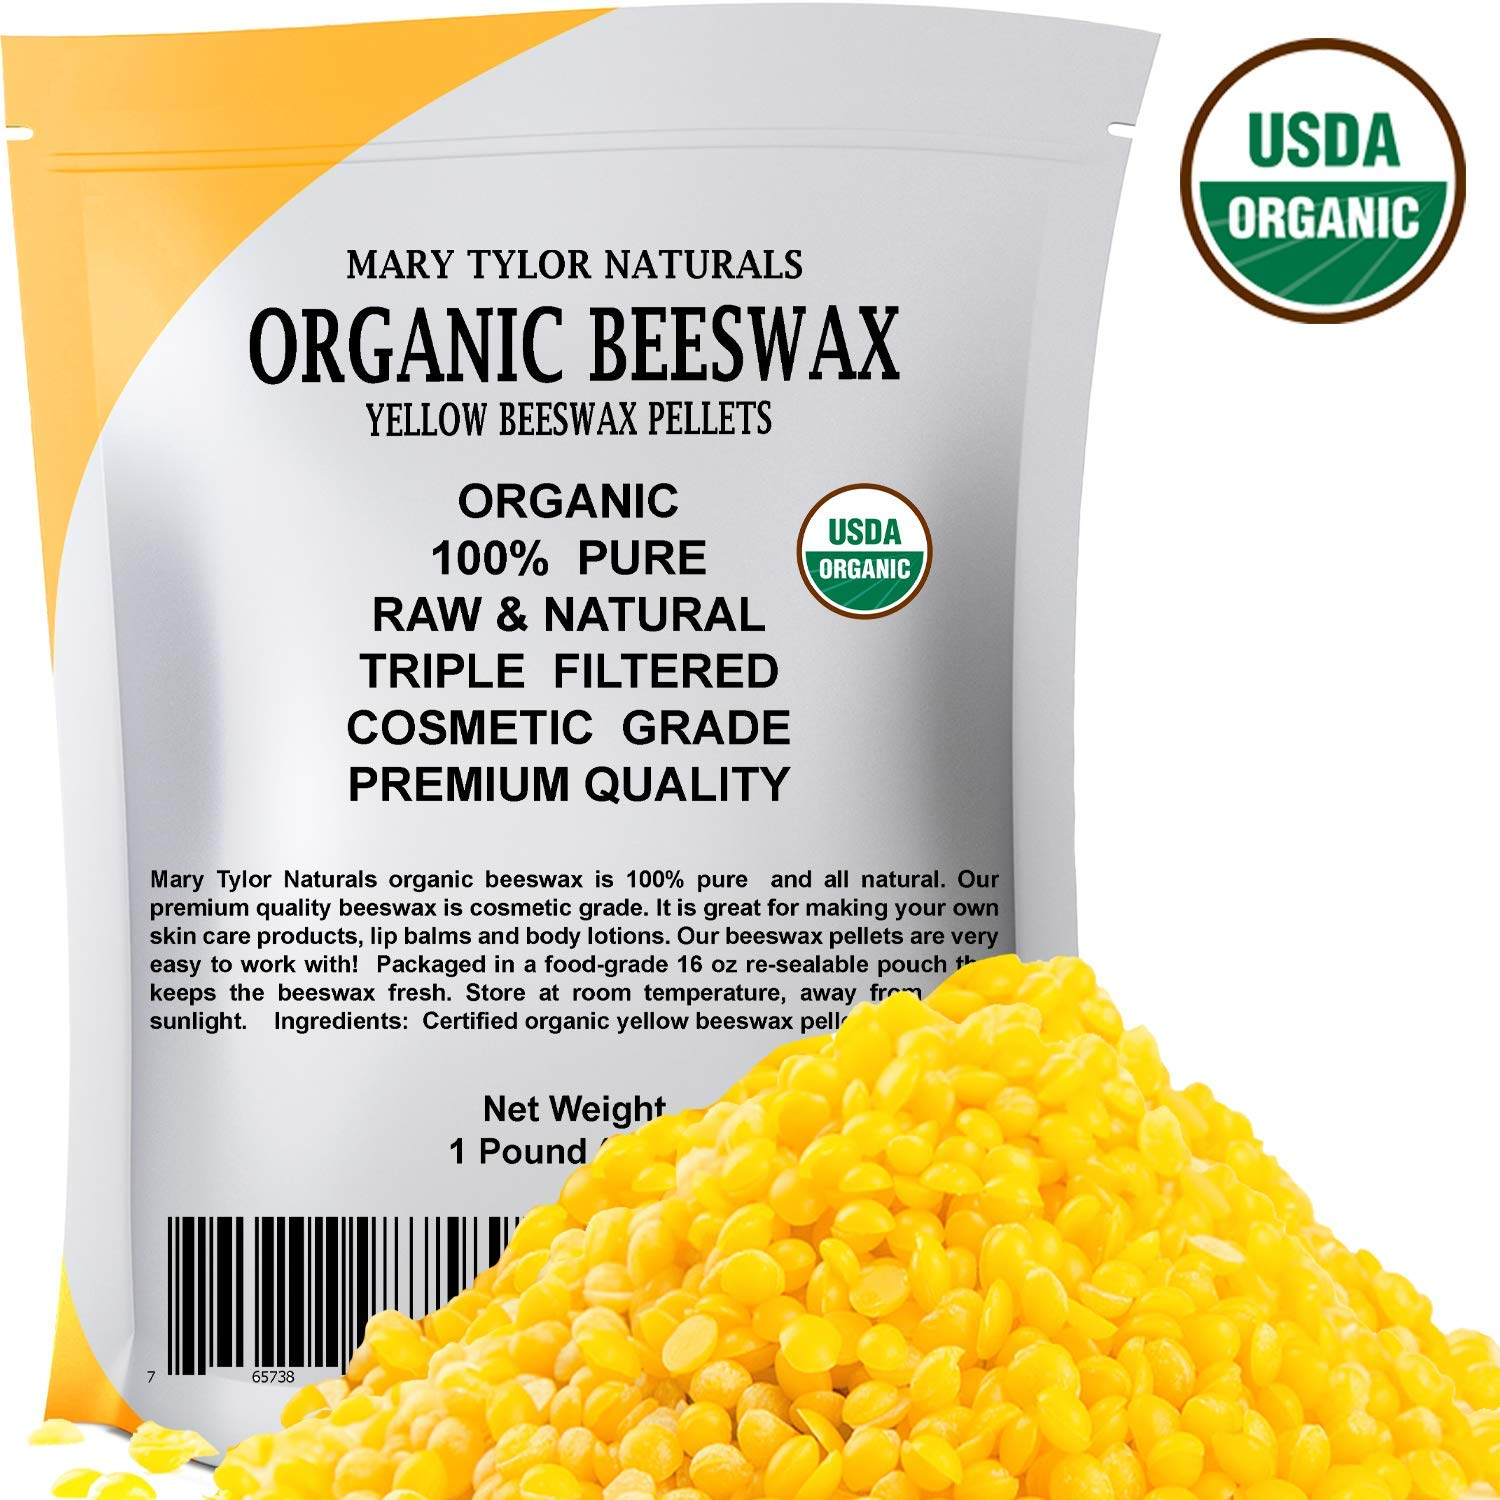 Certified Organic Yellow Beeswax Pellets 1lb by Mary Tylor Naturals, Premium Quality, Cosmetic Grade, Triple Filtered Bees Wax Pastilles Great for DIY Lip Balm Recipes Body Creams Lotions Deodorants by Mary Tylor Naturals